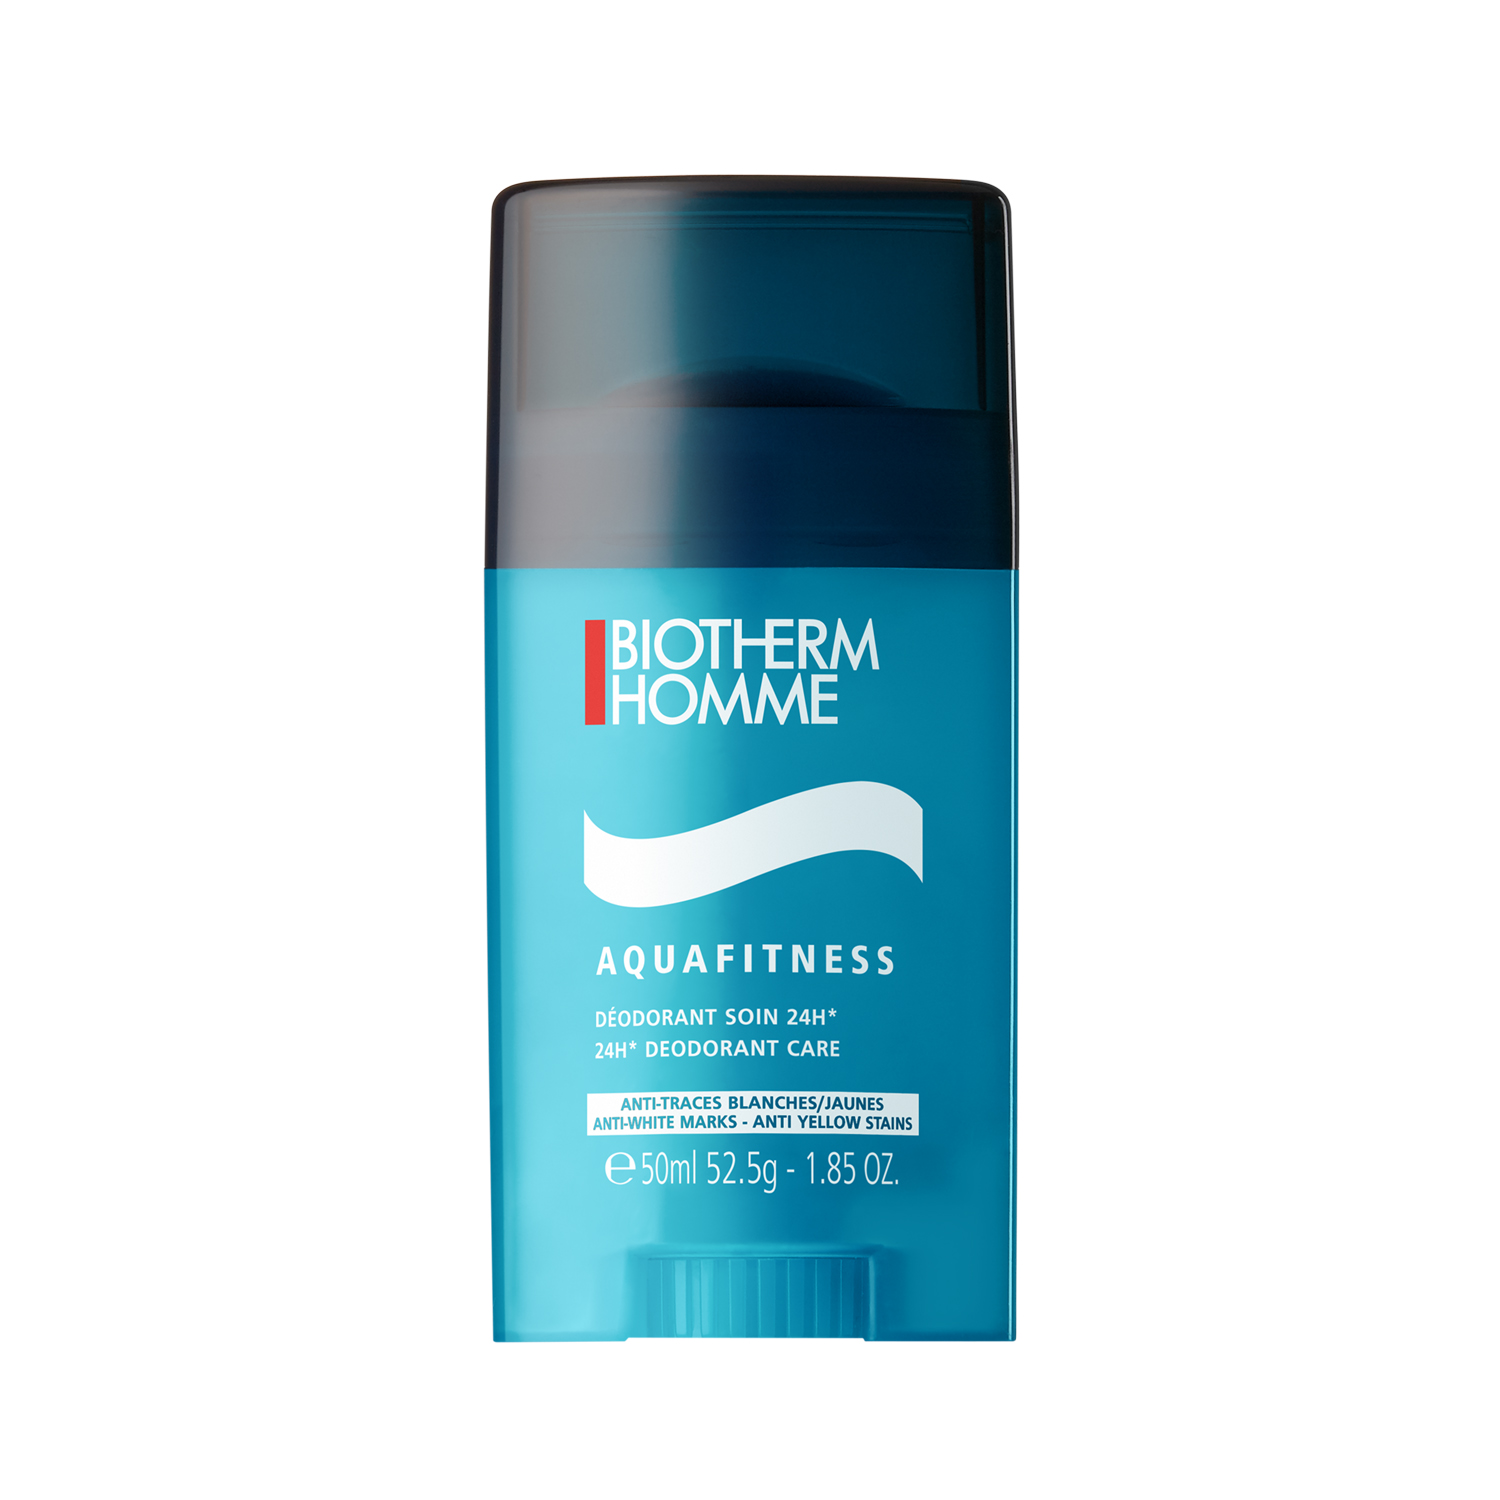 AquaFitness 24h Deodorant Stick Aquafitness 24h Deodorant Stick